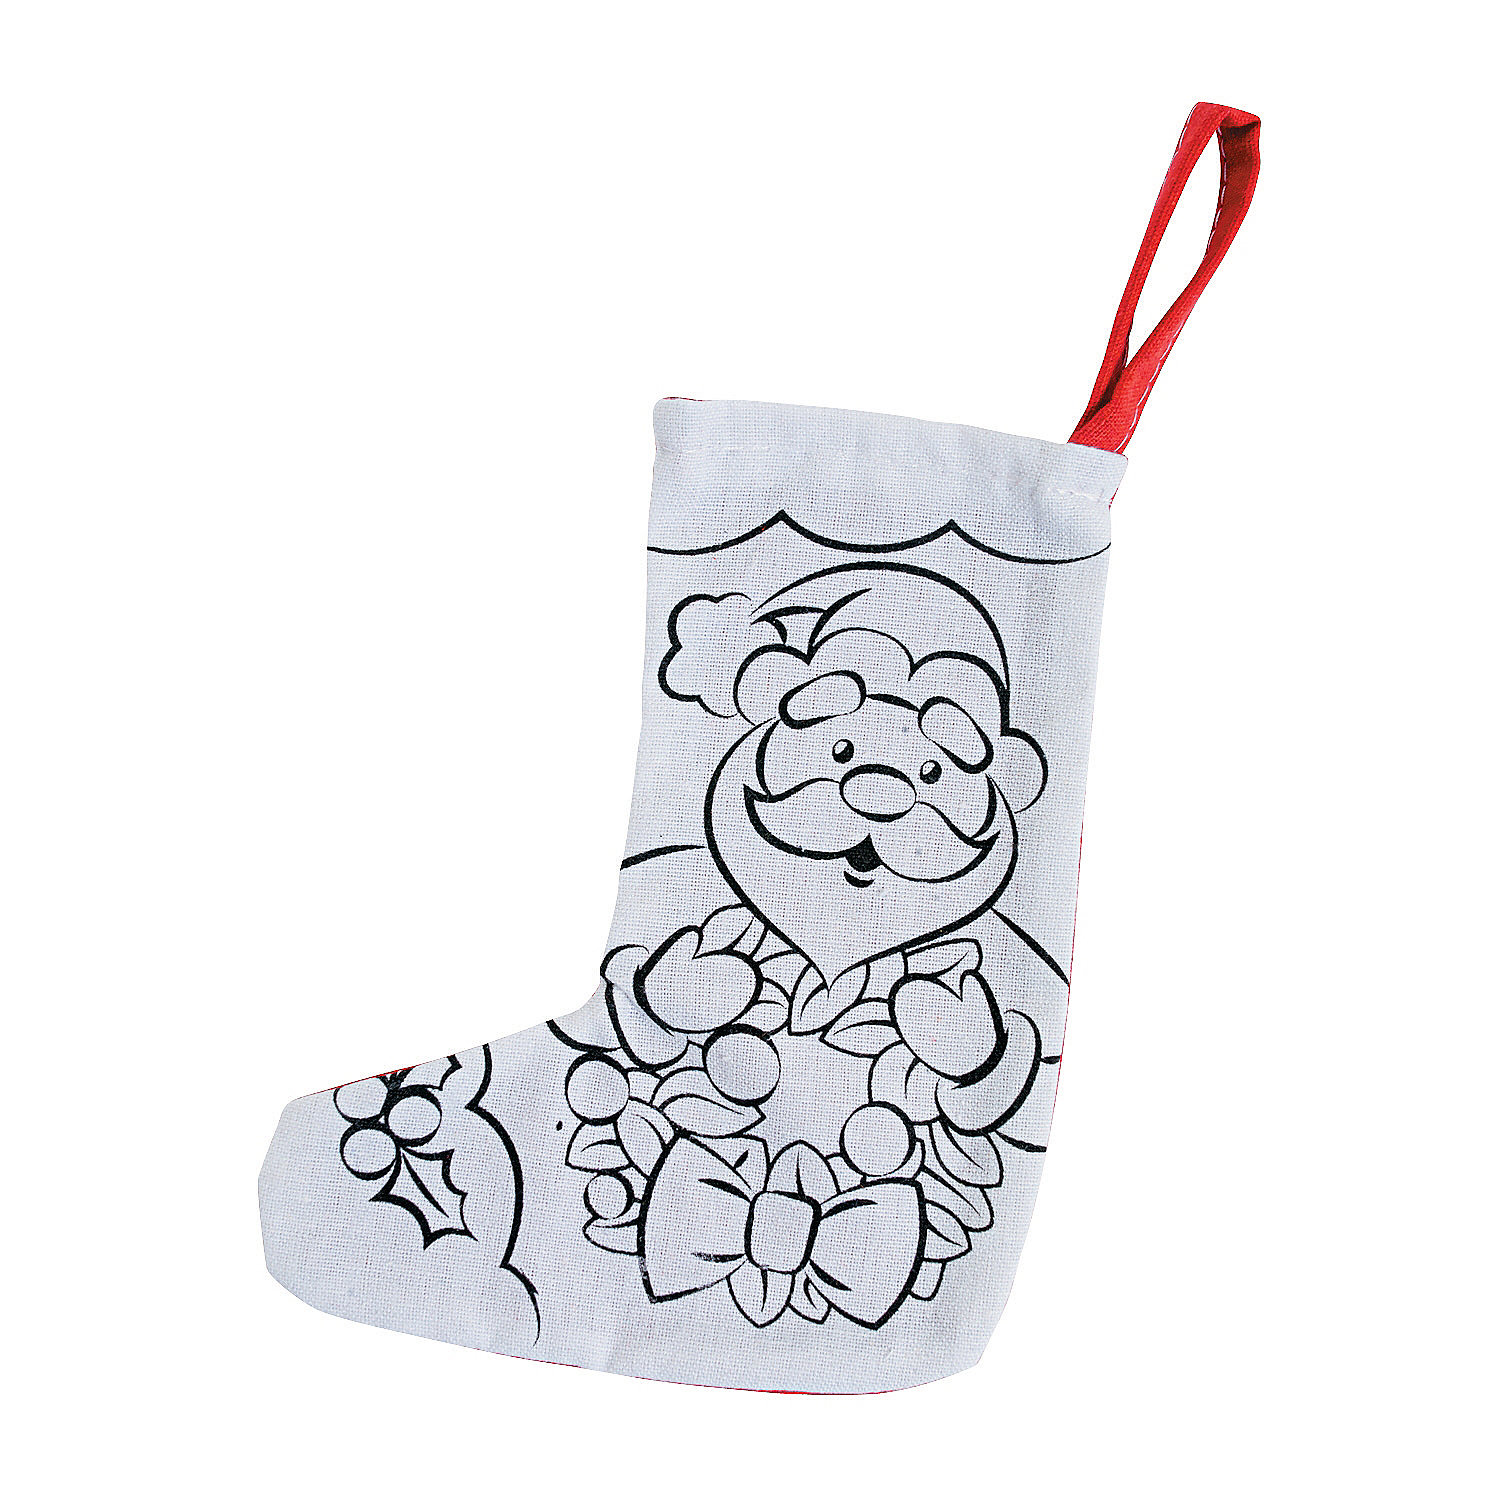 Color Your Own Religious Christmas Ornaments: Color Your Own Mini Christmas Stockings, Coloring Crafts